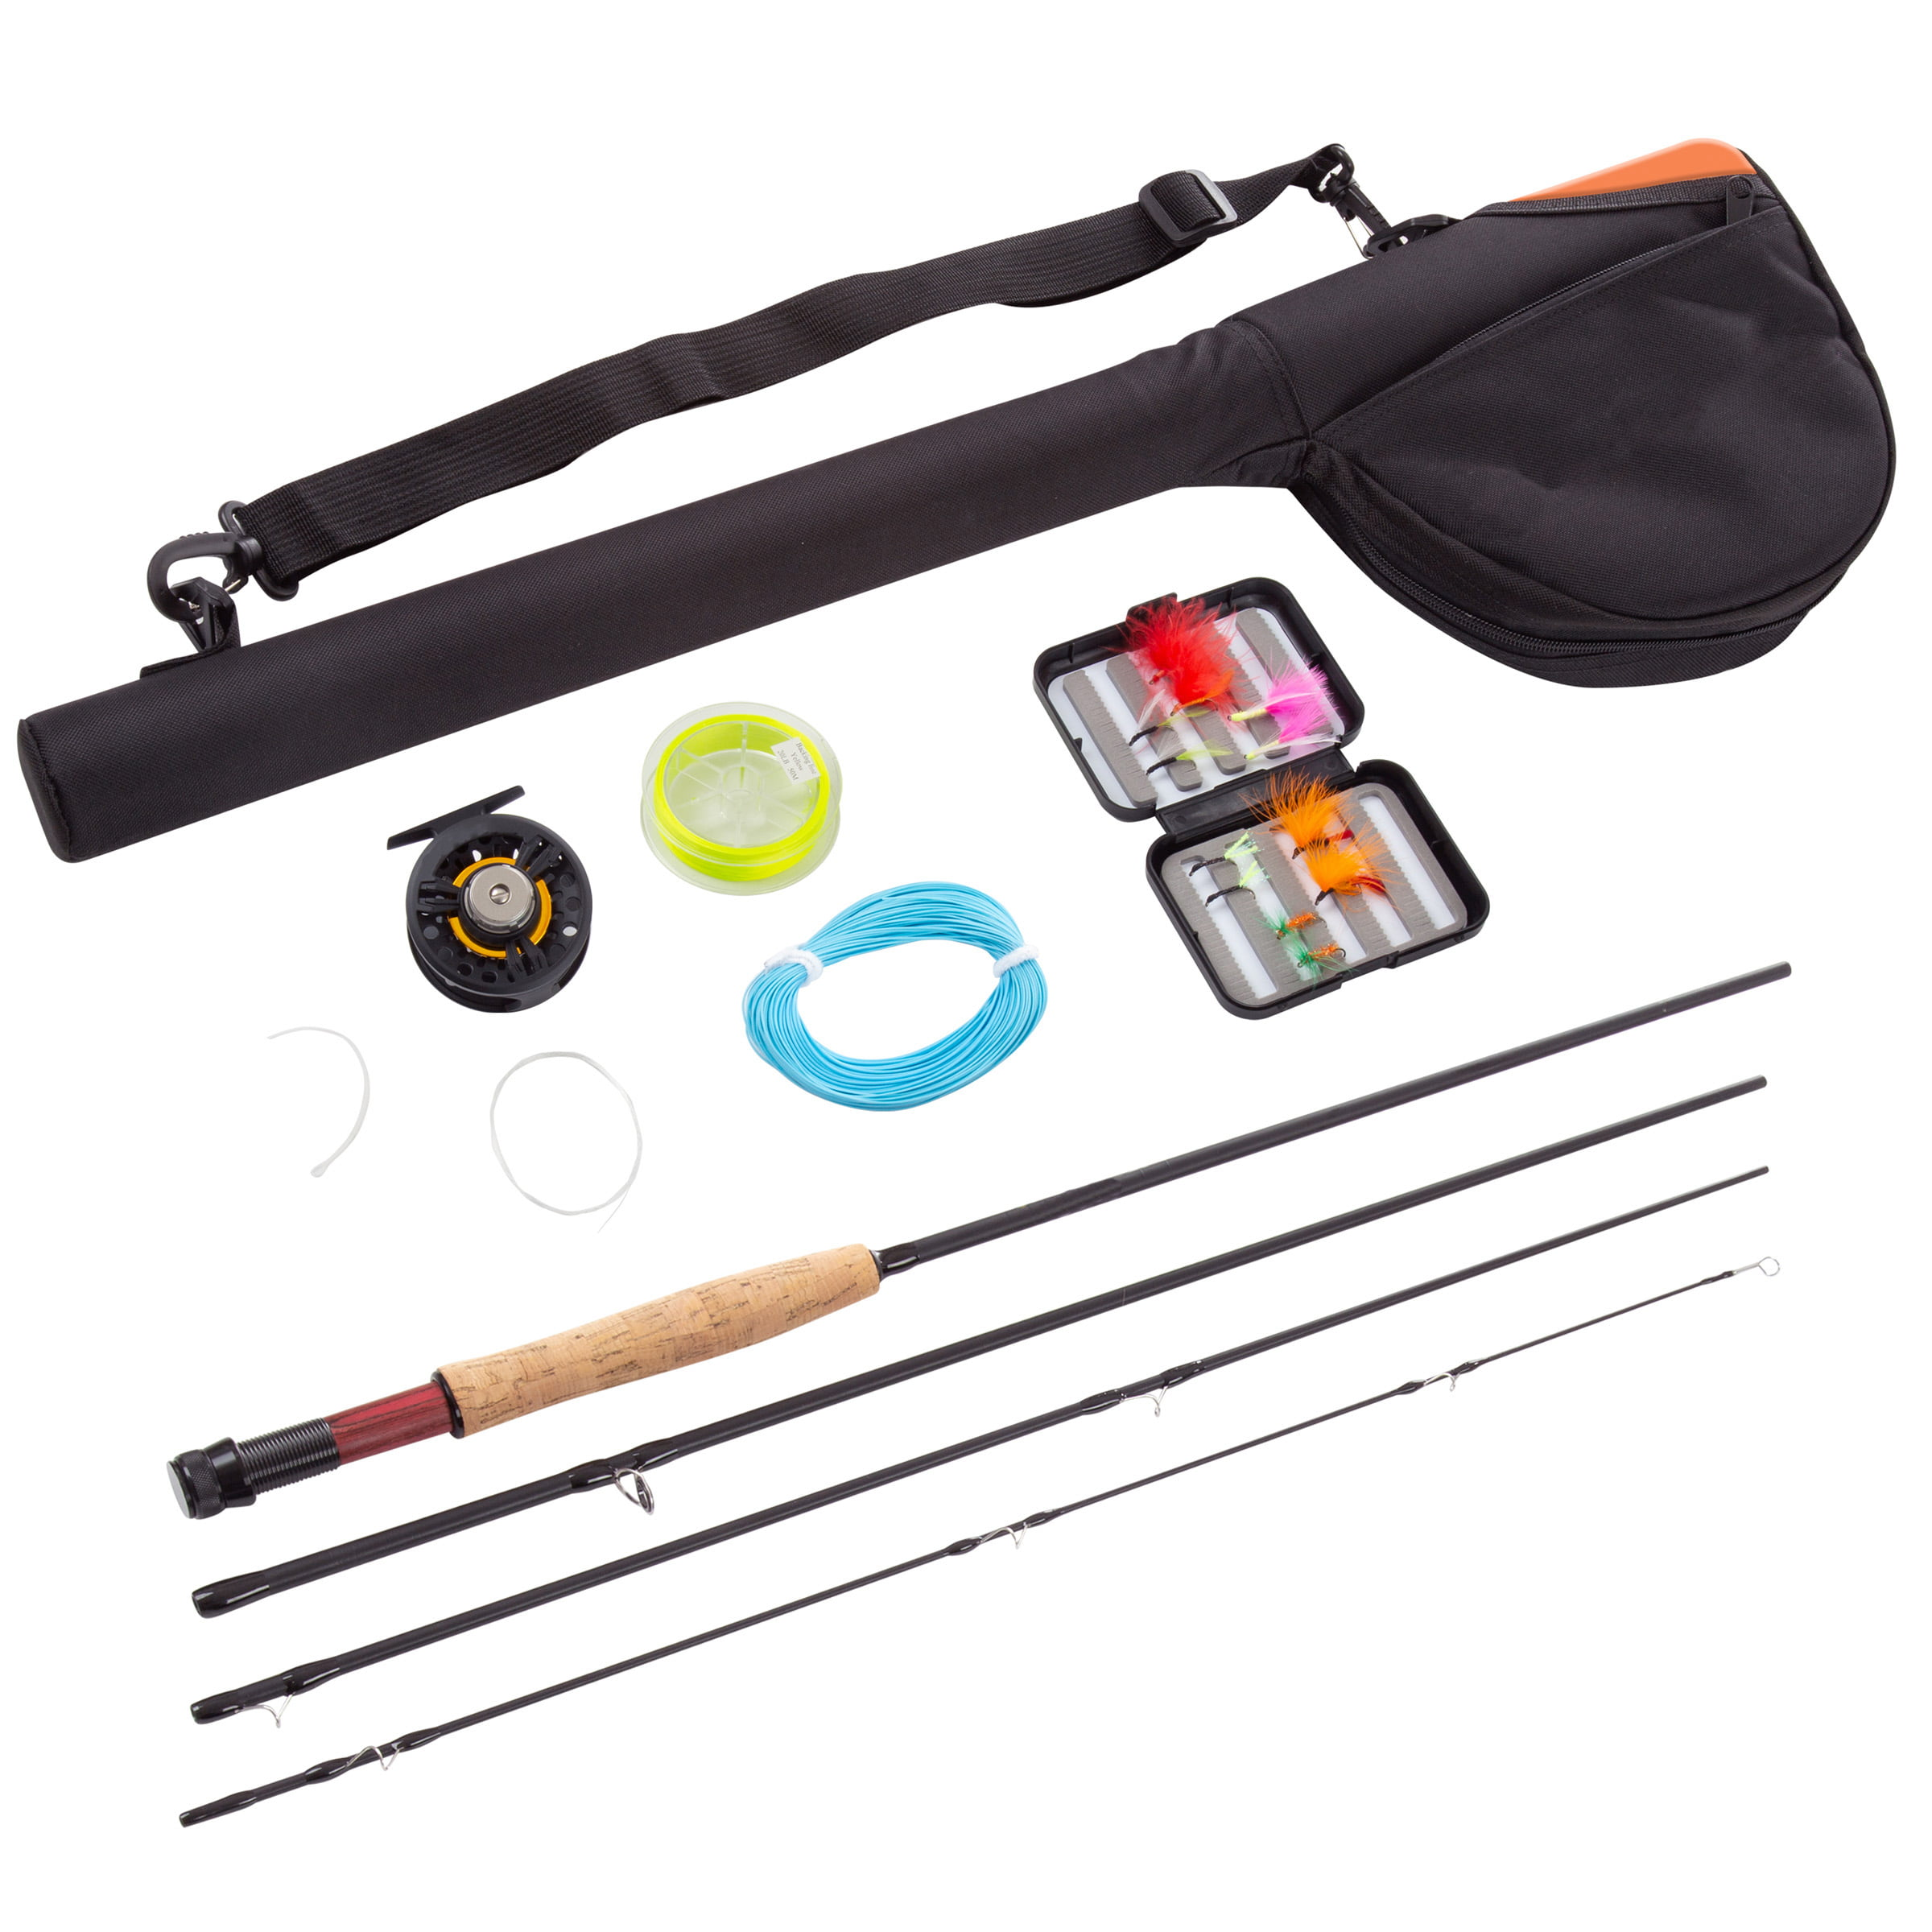 Rad Sportz Fly Fishing Rod Reel Combo Starter Set With Travel Bag Walmart Com Walmart Com